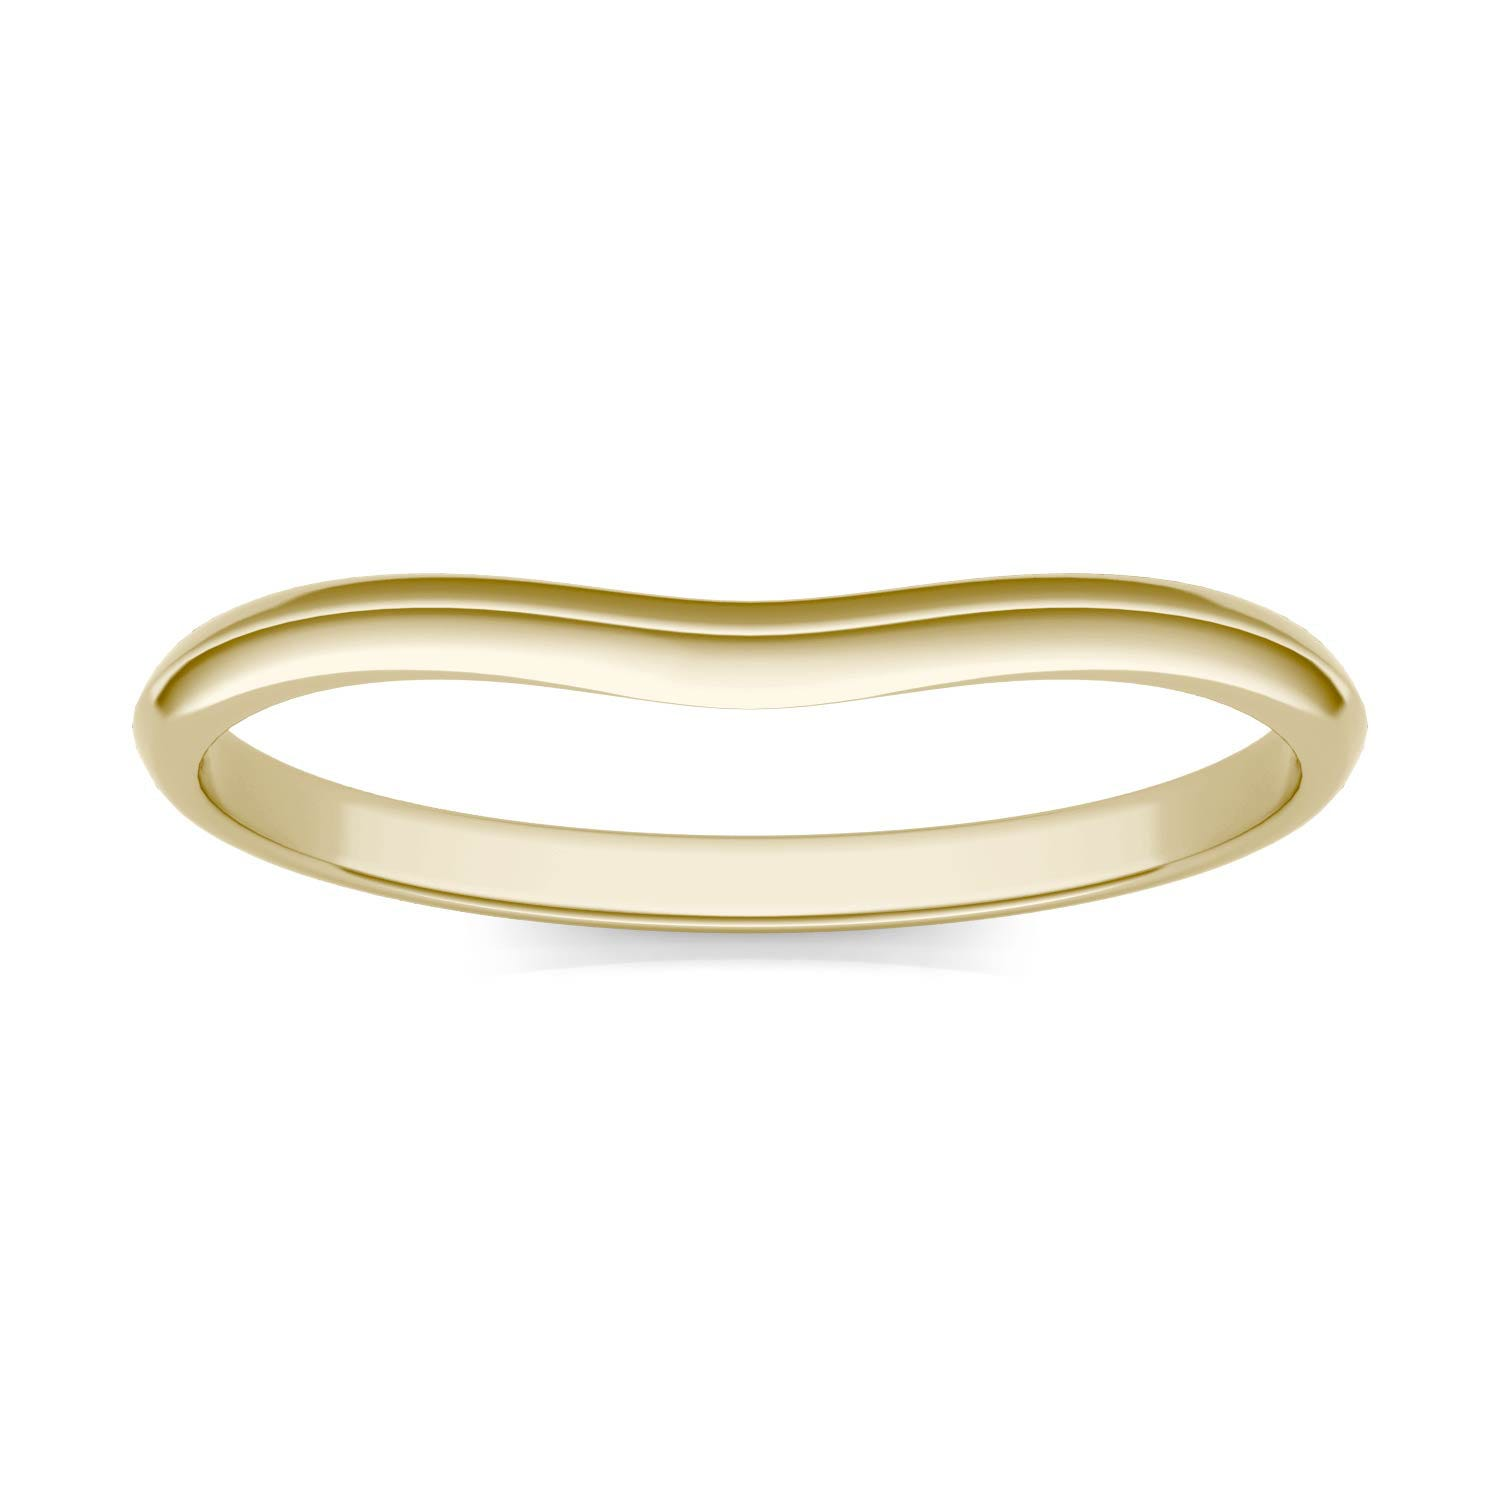 Signature Curved Plain 6mm Cushion Matching Band Wedding Ring in 18K Yellow Gold, Size: 7 Charles & Colvard